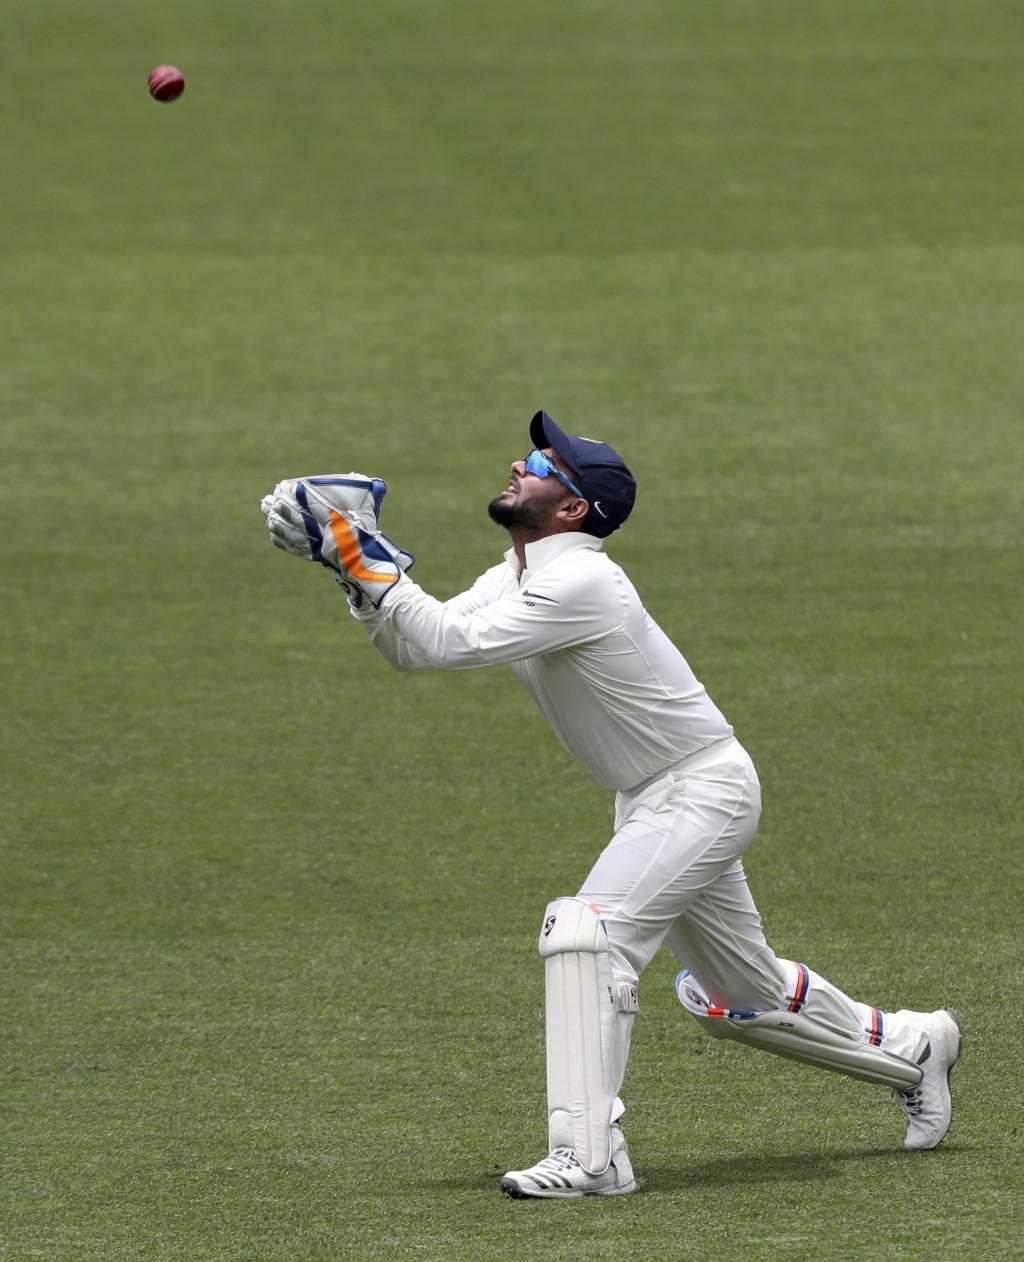 India's Rishabh Pant takes a catch to dismiss Australia's Tim Paine on the final day of the first cricket test between Australia and India in Adelaide...